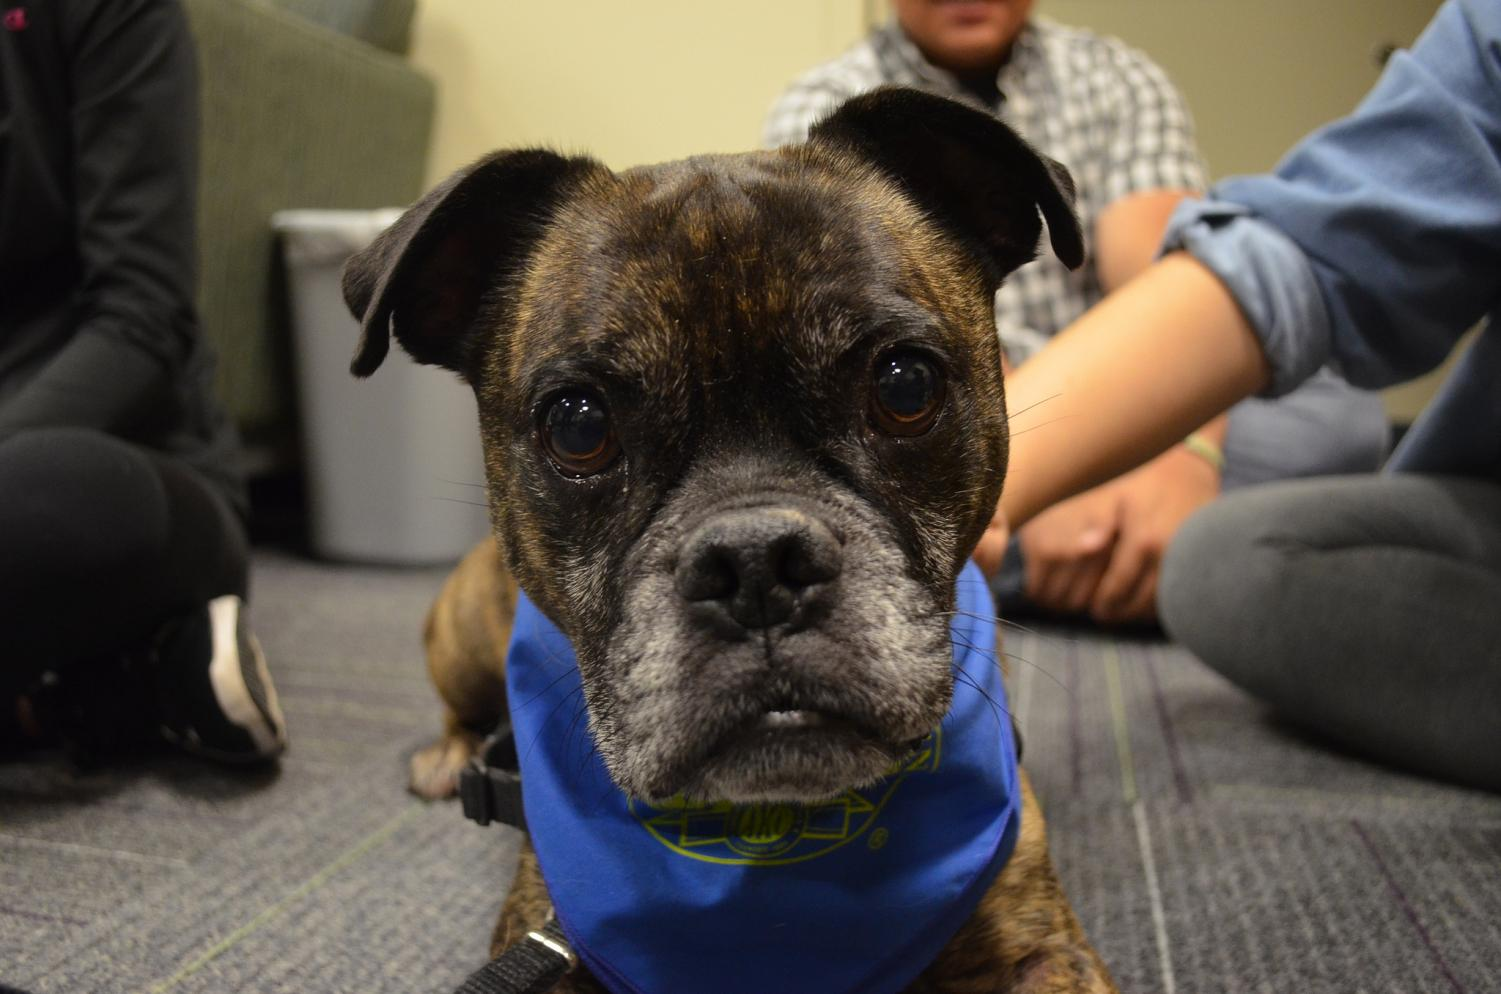 Aiden is the six-year-old boxer pug who has taken over the hour long therapy dog slot in place of Winston on Monday nights from 4 - 5 p.m. in IWC 267. Aiden loves to sit in peoples laps and give big, wet kisses.